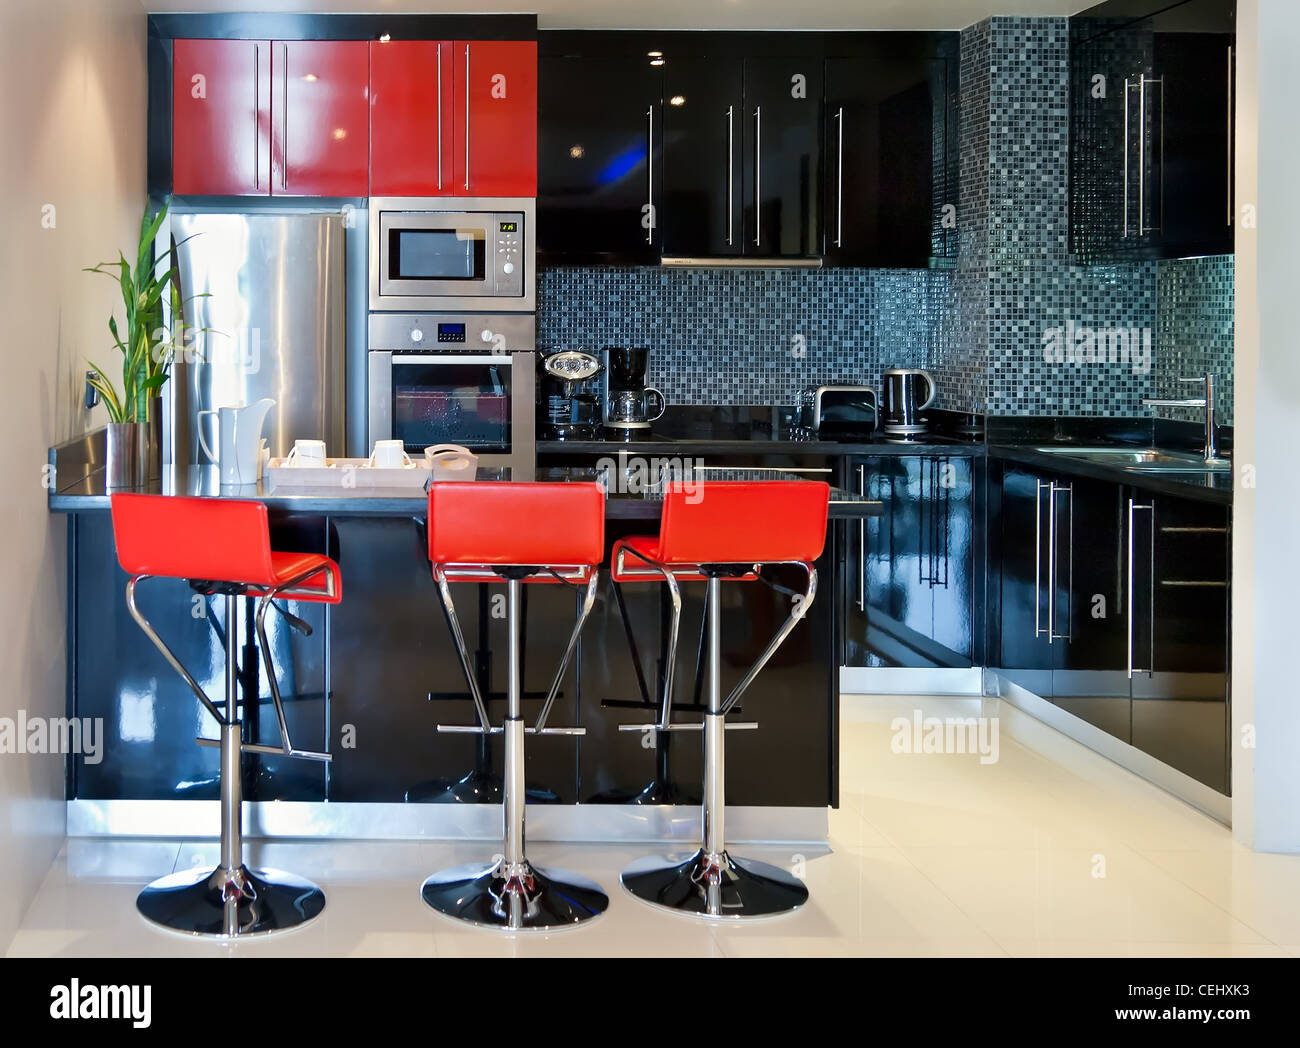 The kitchen chairs with red and black furniture Stock Photo ...